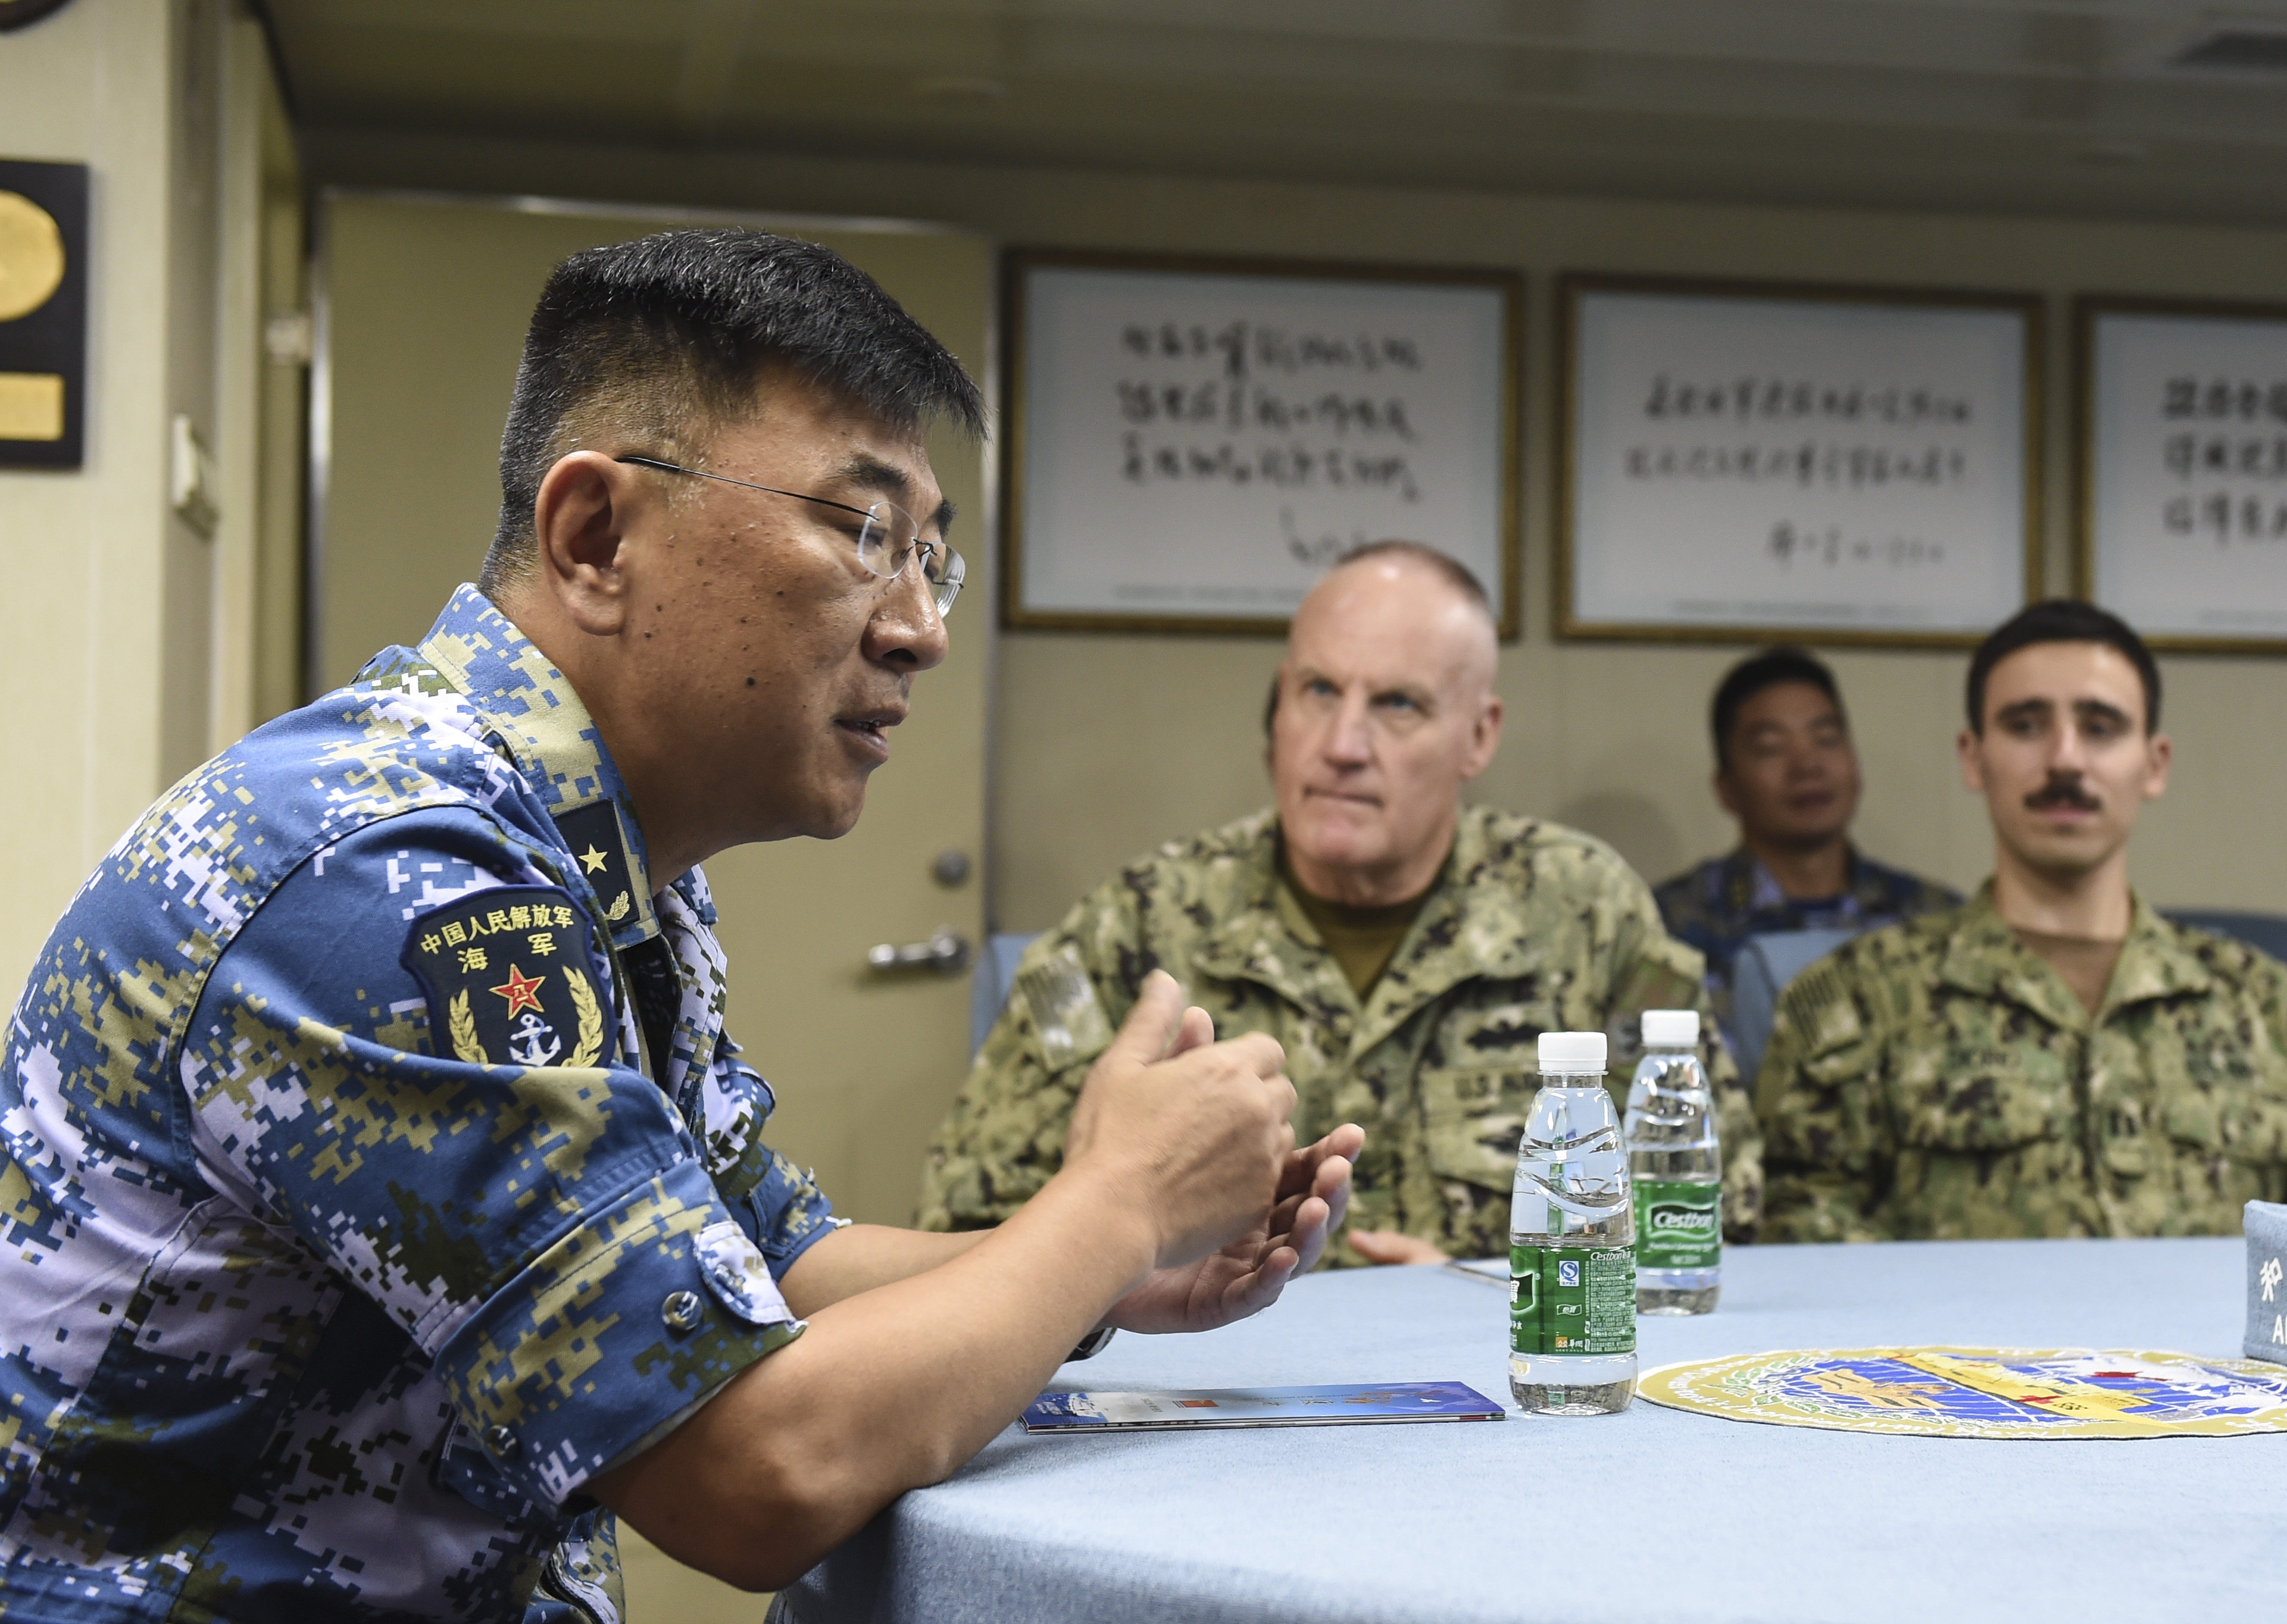 Chinese Navy Rear Admiral Guan Bolin speaks with Expeditionary Medical Facility personnel assigned to Camp Lemonnier during a tour of the ship's capabilities, August 28, 2017. Bolin expressed his gratitude for their visit and offered use of the ship, if needed, for emergency medical services. (U.S. Air Force photo by Staff Sgt. Eboni Prince)